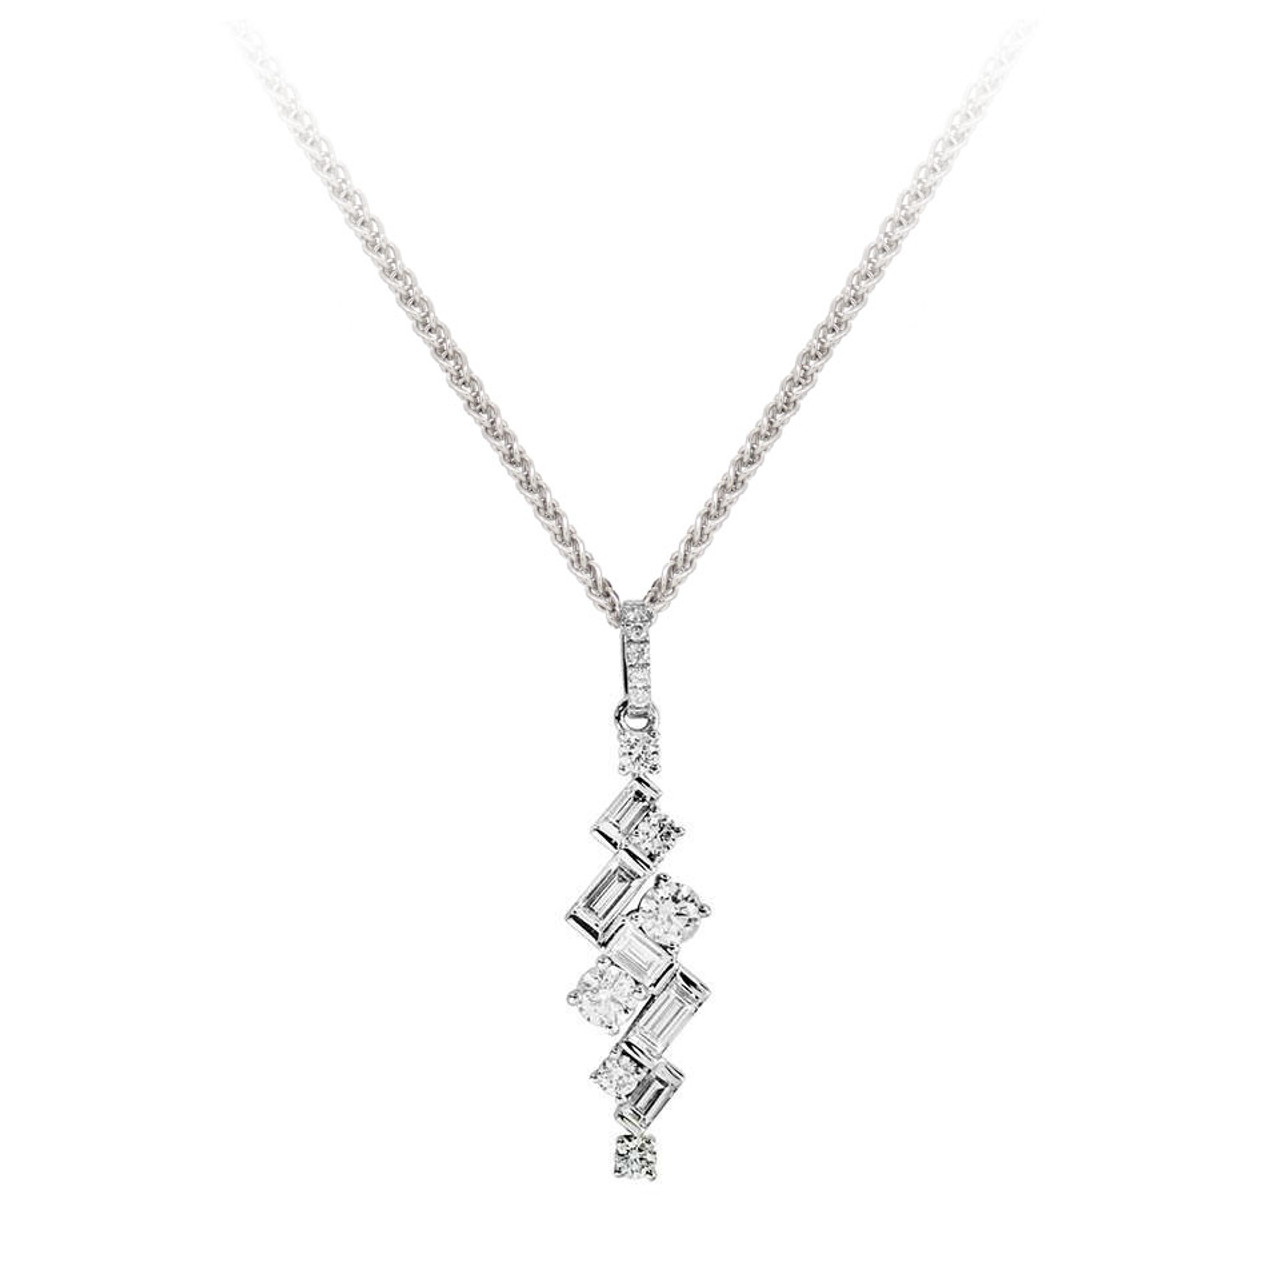 18ct White Gold Diamond Jazz Pendant on Chain